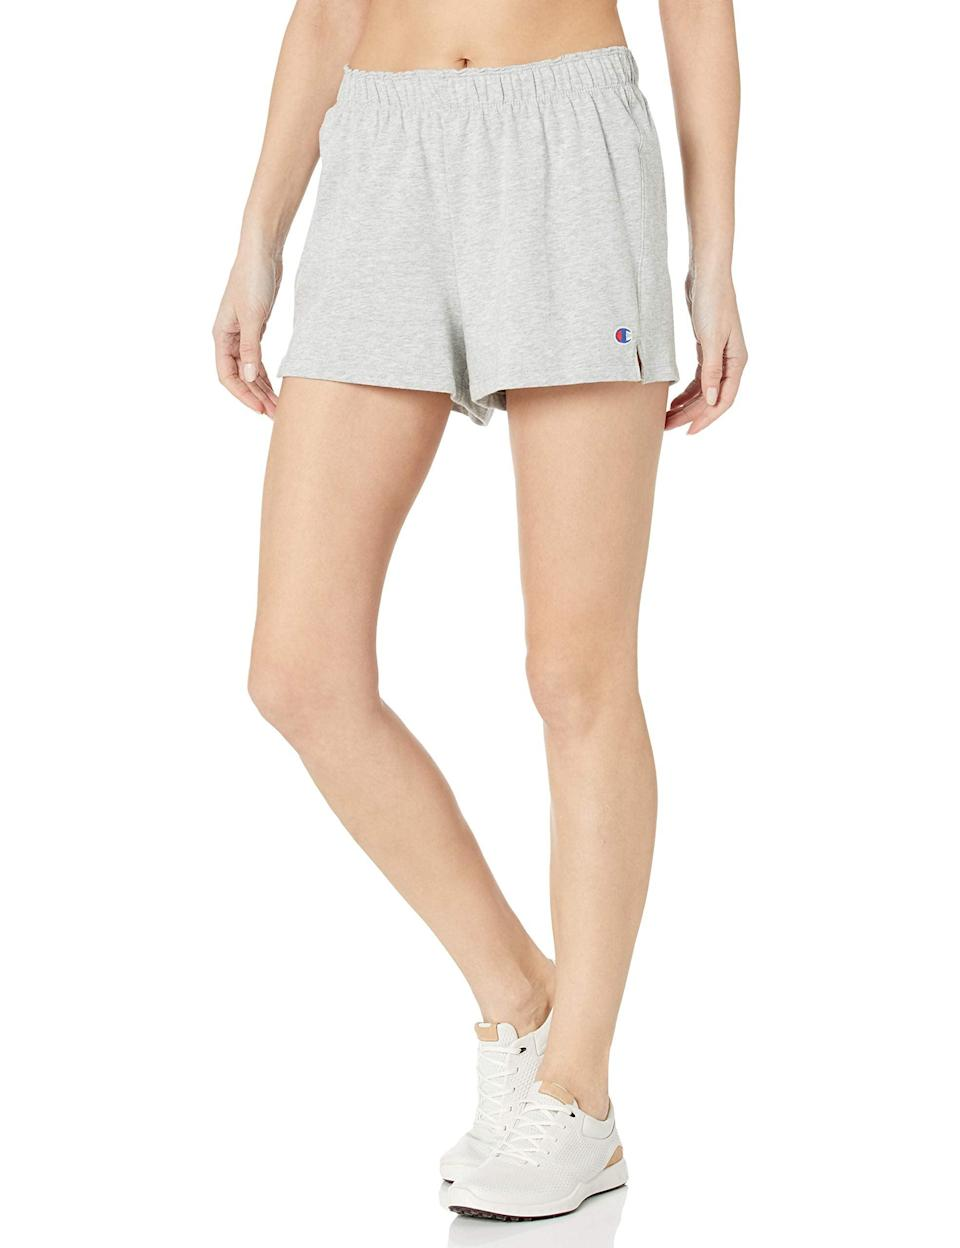 "<br><br><strong>Champion</strong> Women's Practice Short, $, available at <a href=""https://amzn.to/2GRYdfW"" rel=""nofollow noopener"" target=""_blank"" data-ylk=""slk:Amazon"" class=""link rapid-noclick-resp"">Amazon</a>"